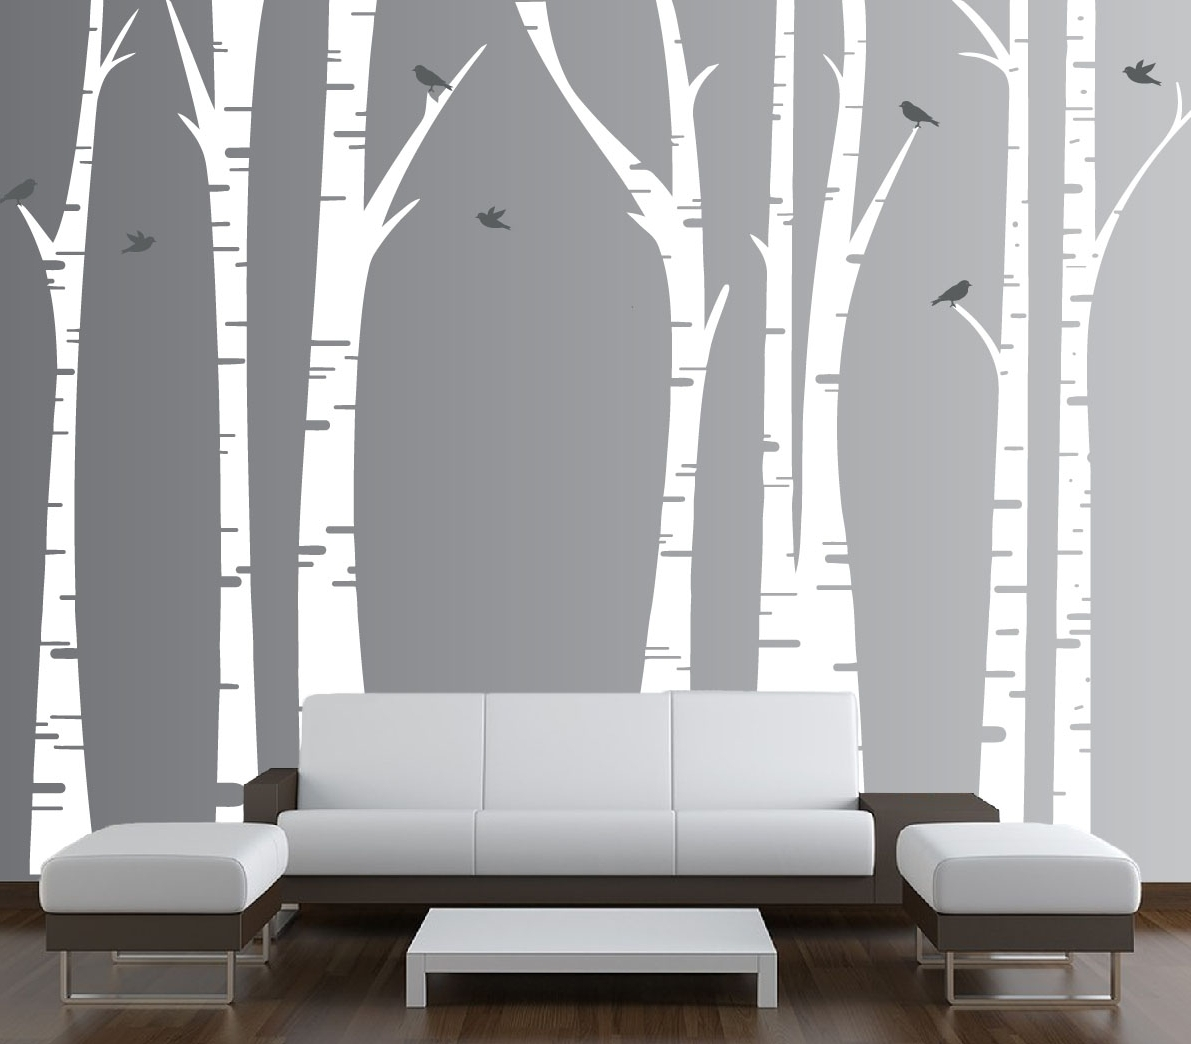 Birch Tree Wall Art Pertaining To Well Known Forest Birch Tree Wall Art : Andrews Living Arts – Look Fresh And (View 9 of 20)